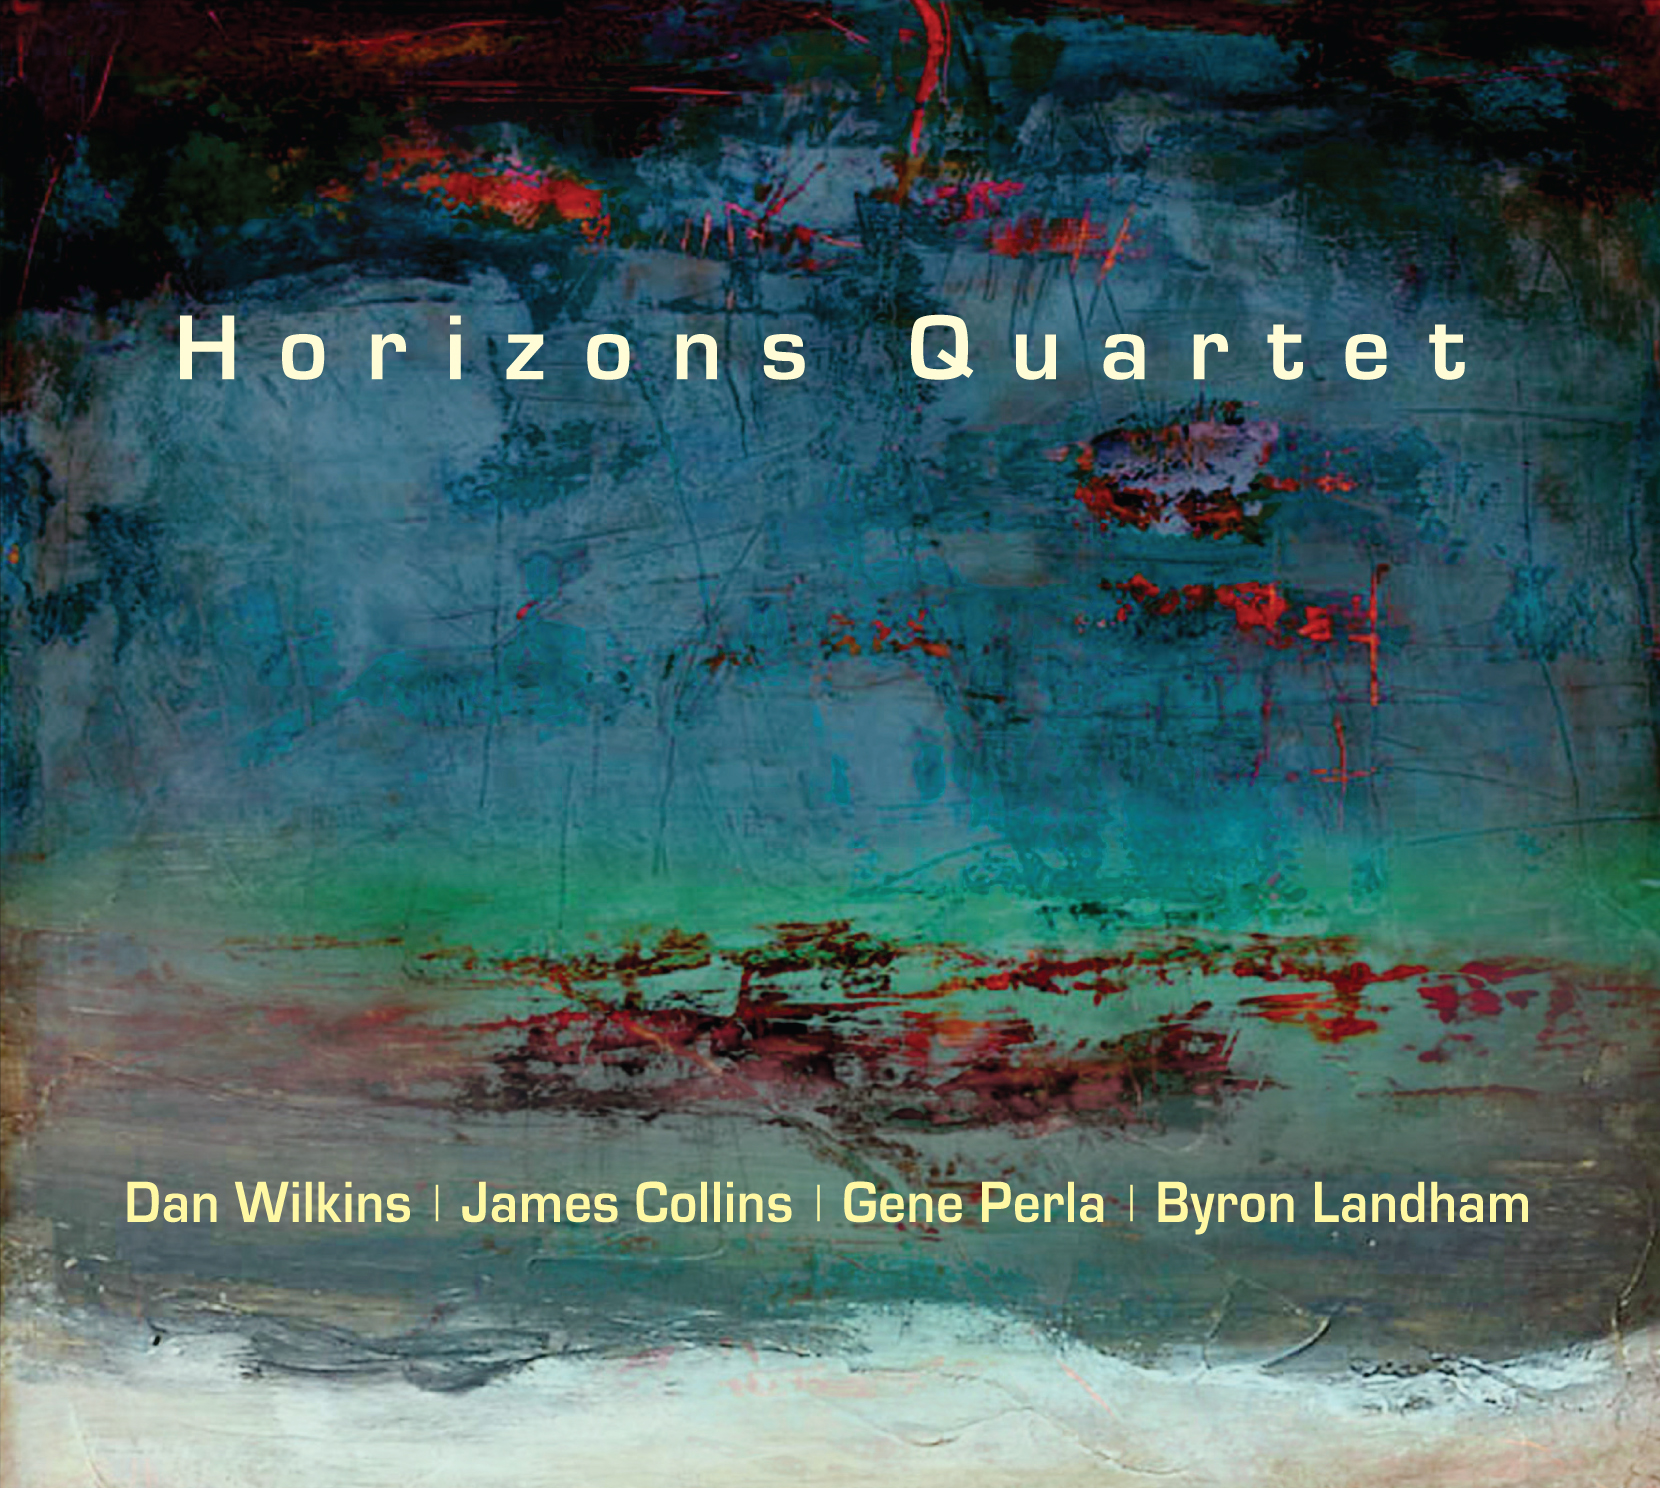 NEW RELEASE: Horizons Quartet (f/ Dan Wilkins, James Collins, Gene Perla + Byron Landham) to Drop Self-Titled Debut on June 25, 2021 via PM Records